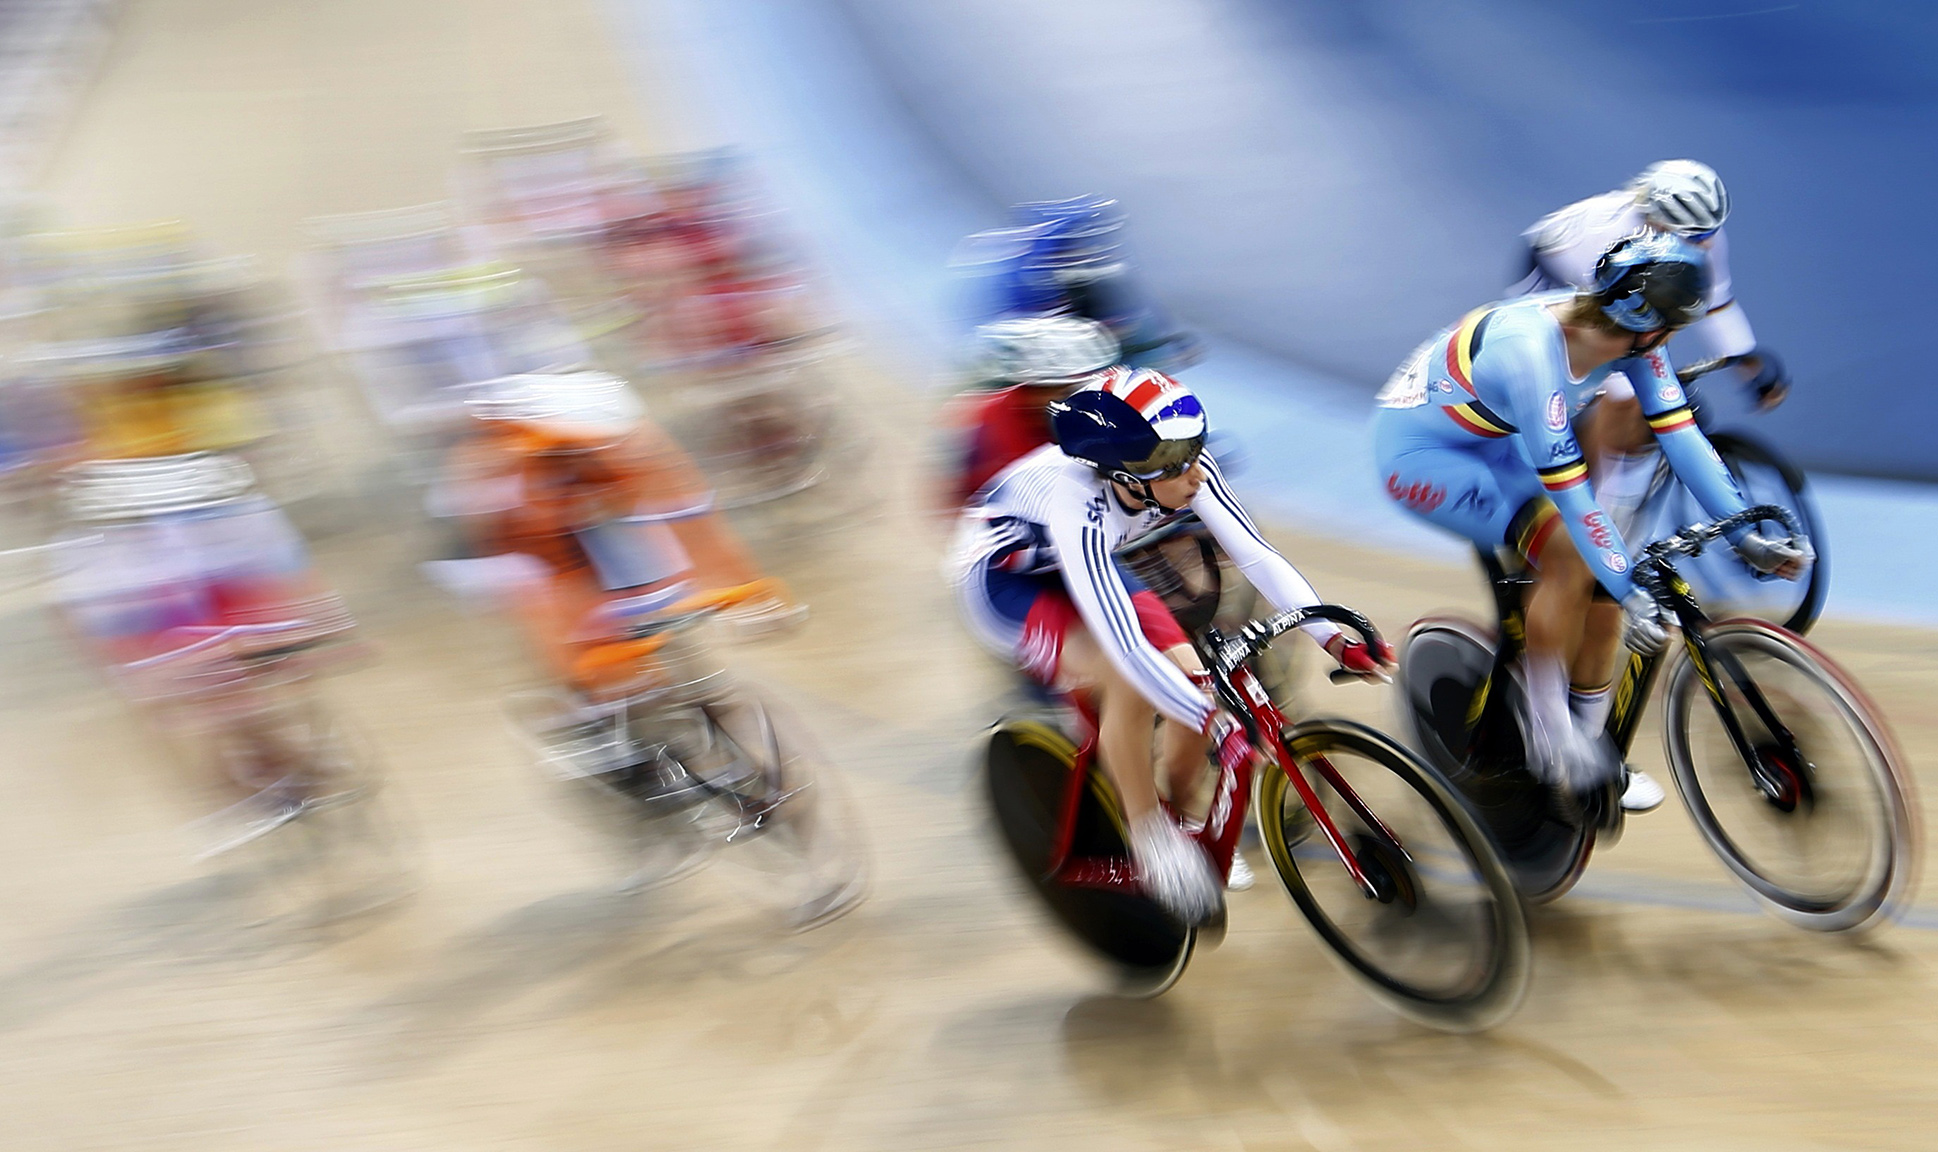 Trott of Great Britain on her way to win gold in  the Women's Scratch Race Final at the UCI Track Cycling World Championships in London